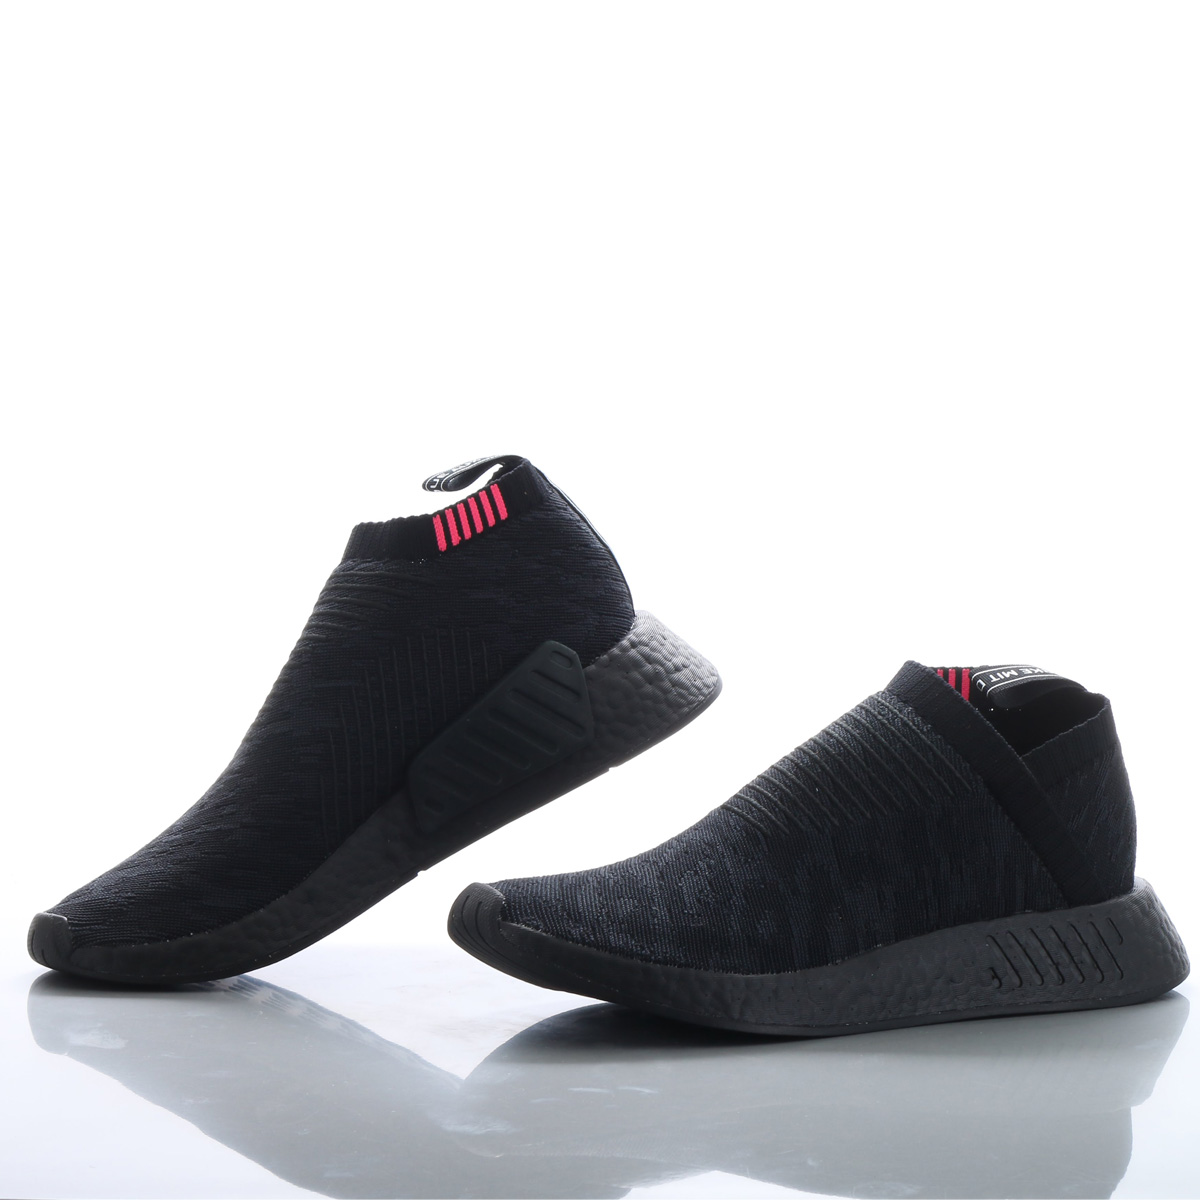 competitive price a4f02 e8af2 adidas Originals NMD_CS2 PK (Adidas originals N M D CS2 PK) Core  Black/Carbon/Shock Pink 18SS-S